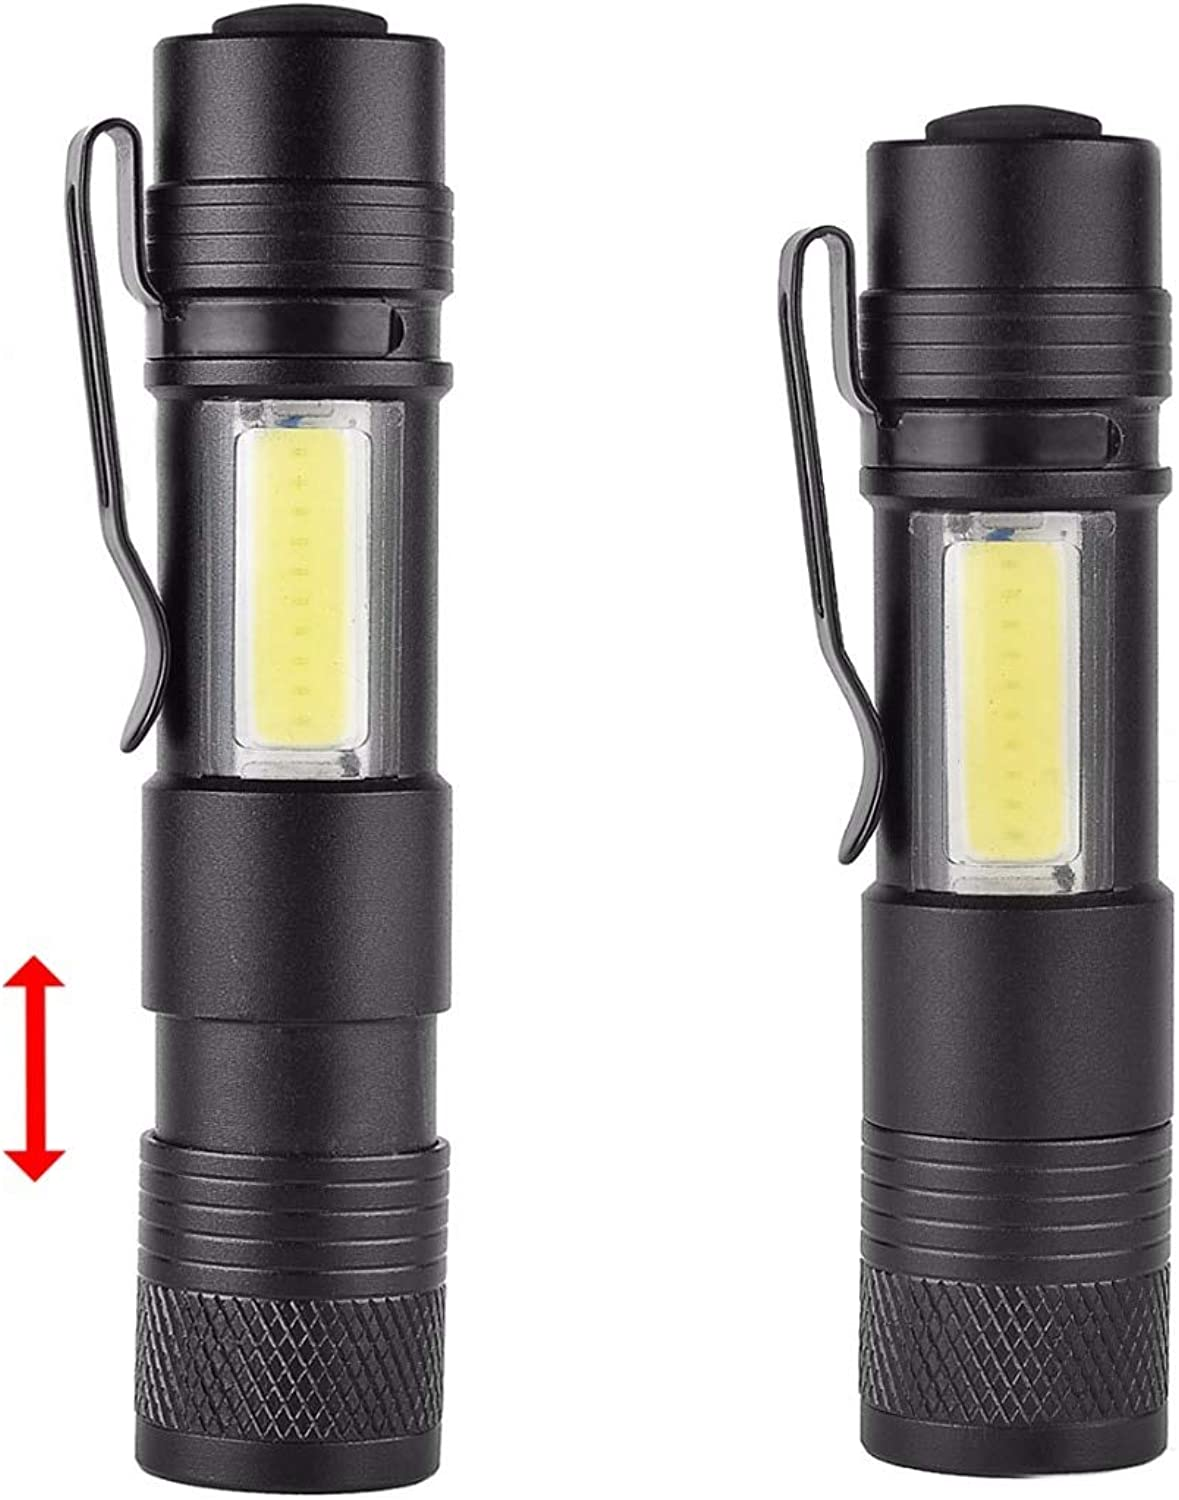 KINWAT Pen Lights Portable Mini Super Bright XPE+COB LED Flashlight Rechargeable Zoomable Torch 4 Modes Work Hunting Lamp